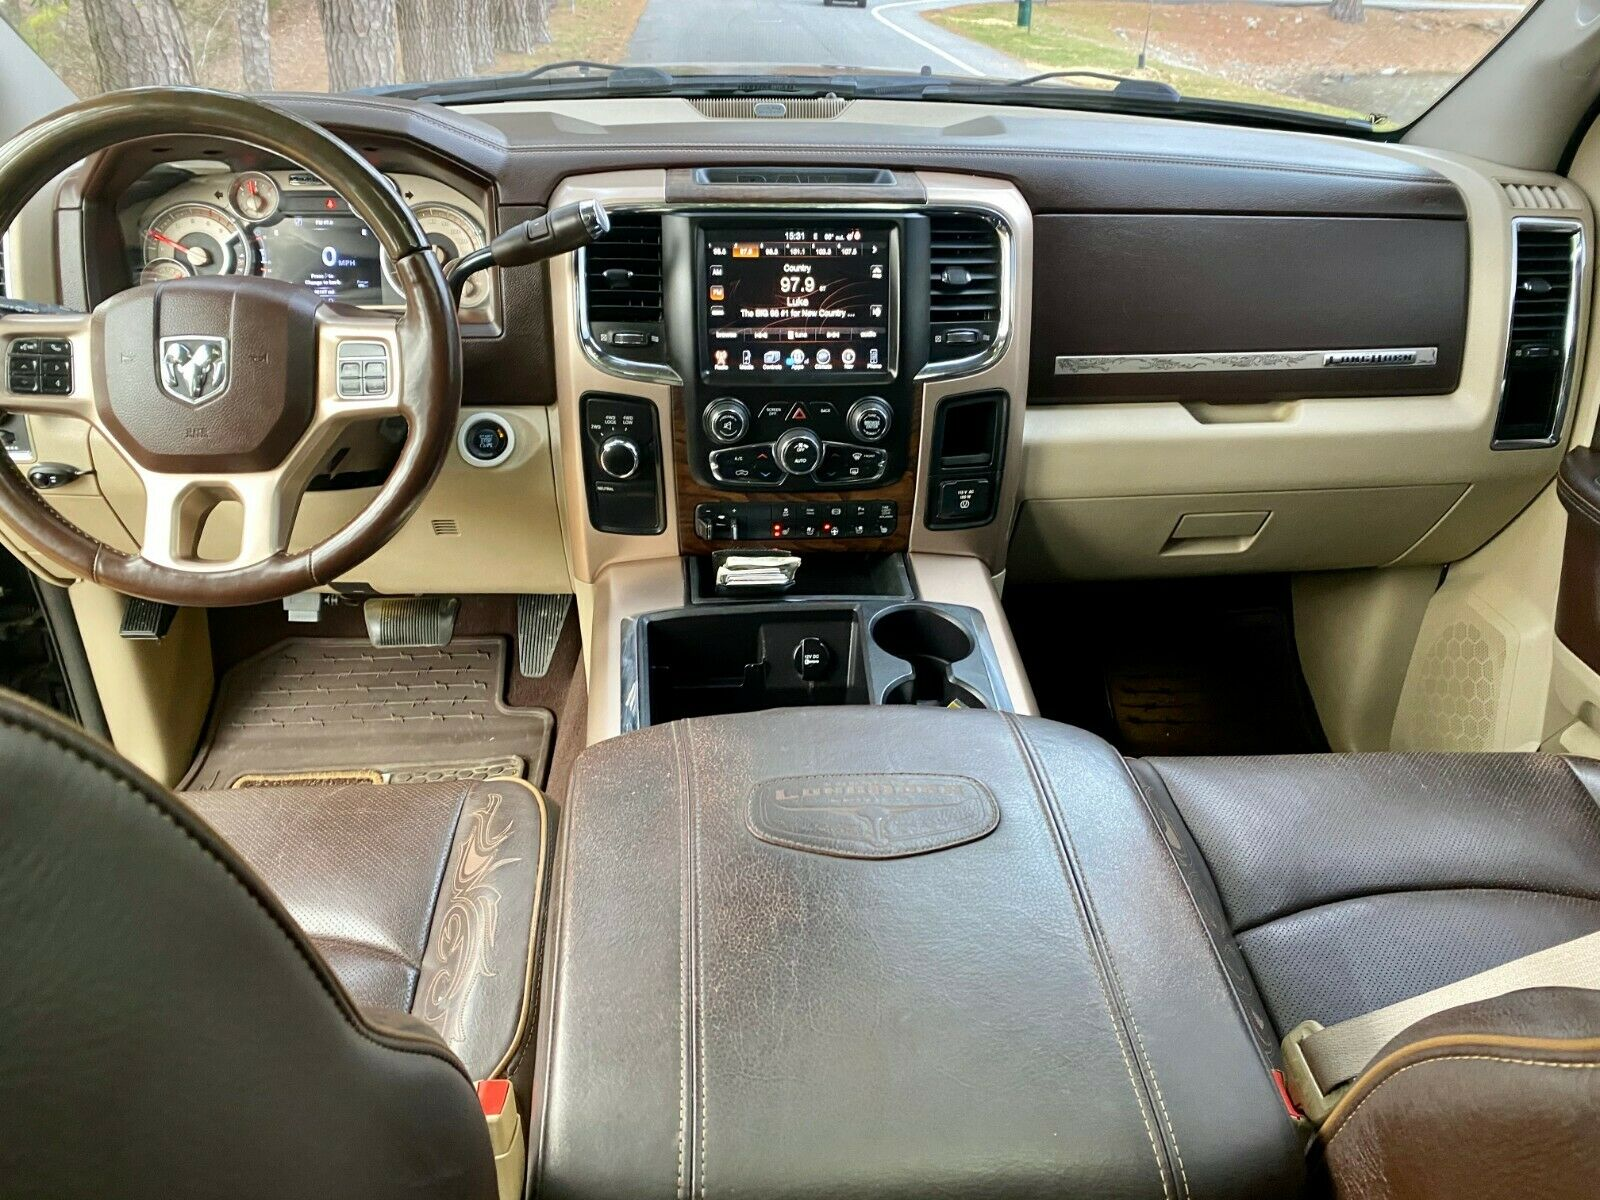 loaded with extras 2013 Dodge Ram 2500 Laramie Longhorn lifted